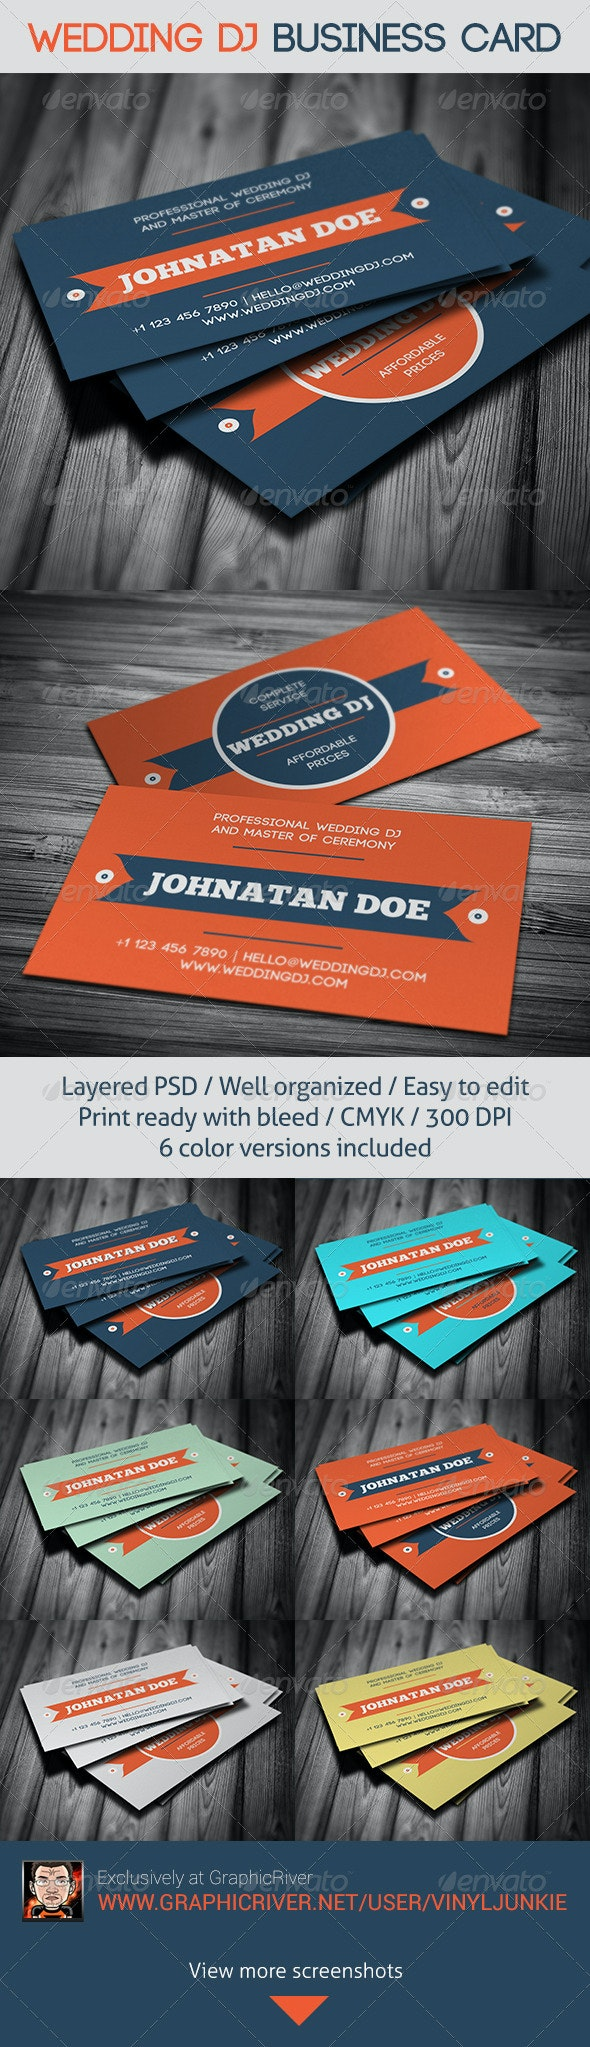 Wedding DJ Business Card - Industry Specific Business Cards